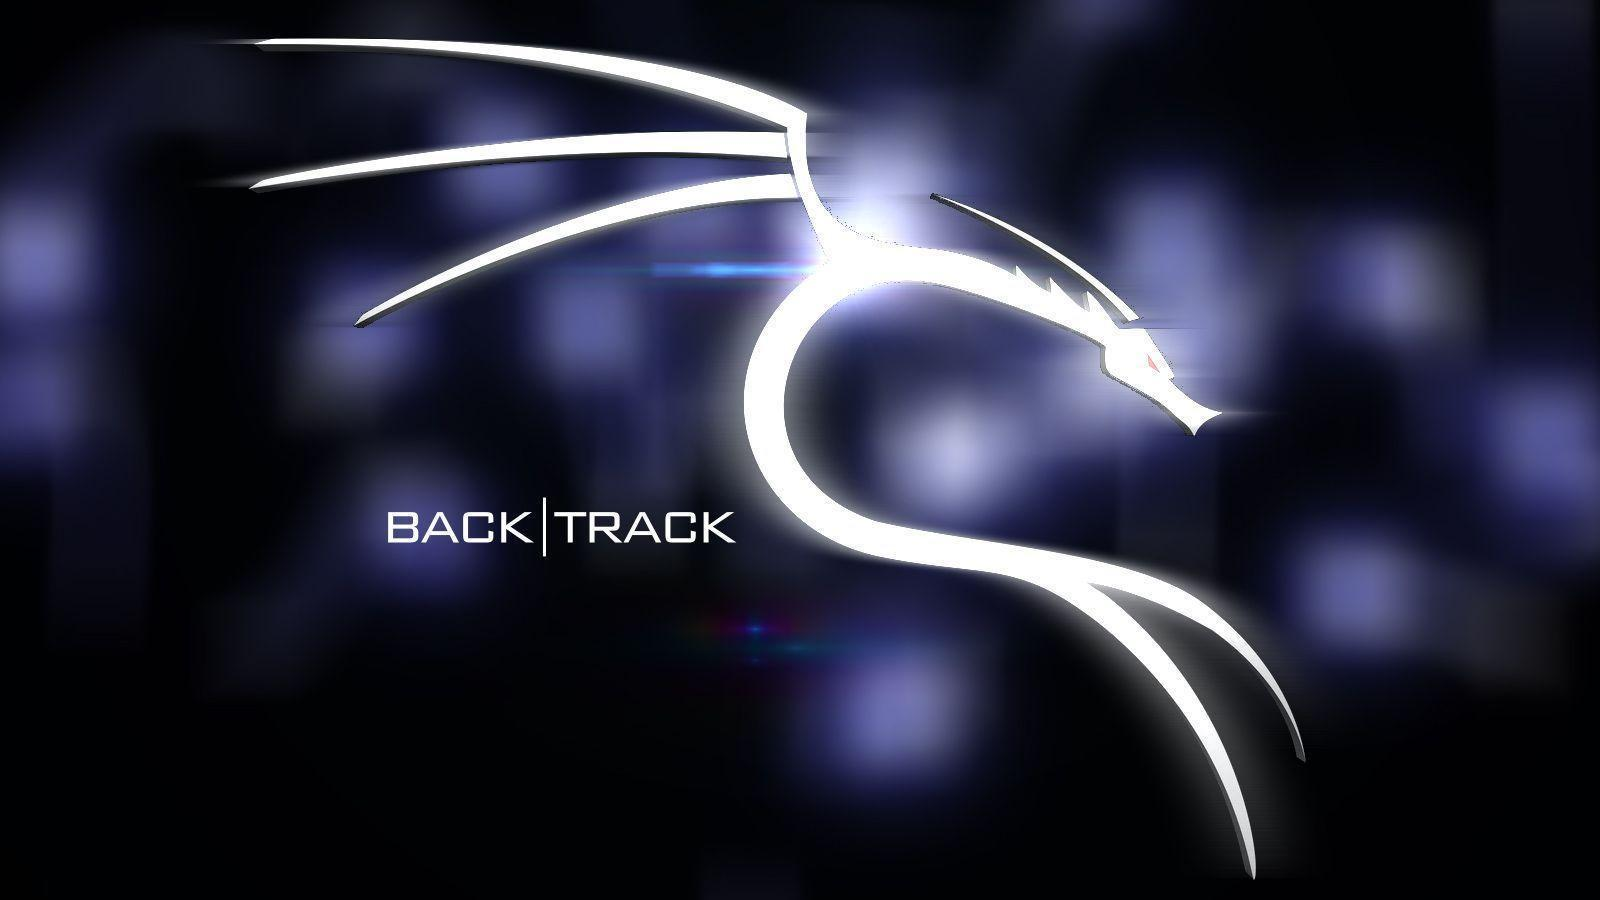 BackTrack Wallpapers - Wallpaper Cave